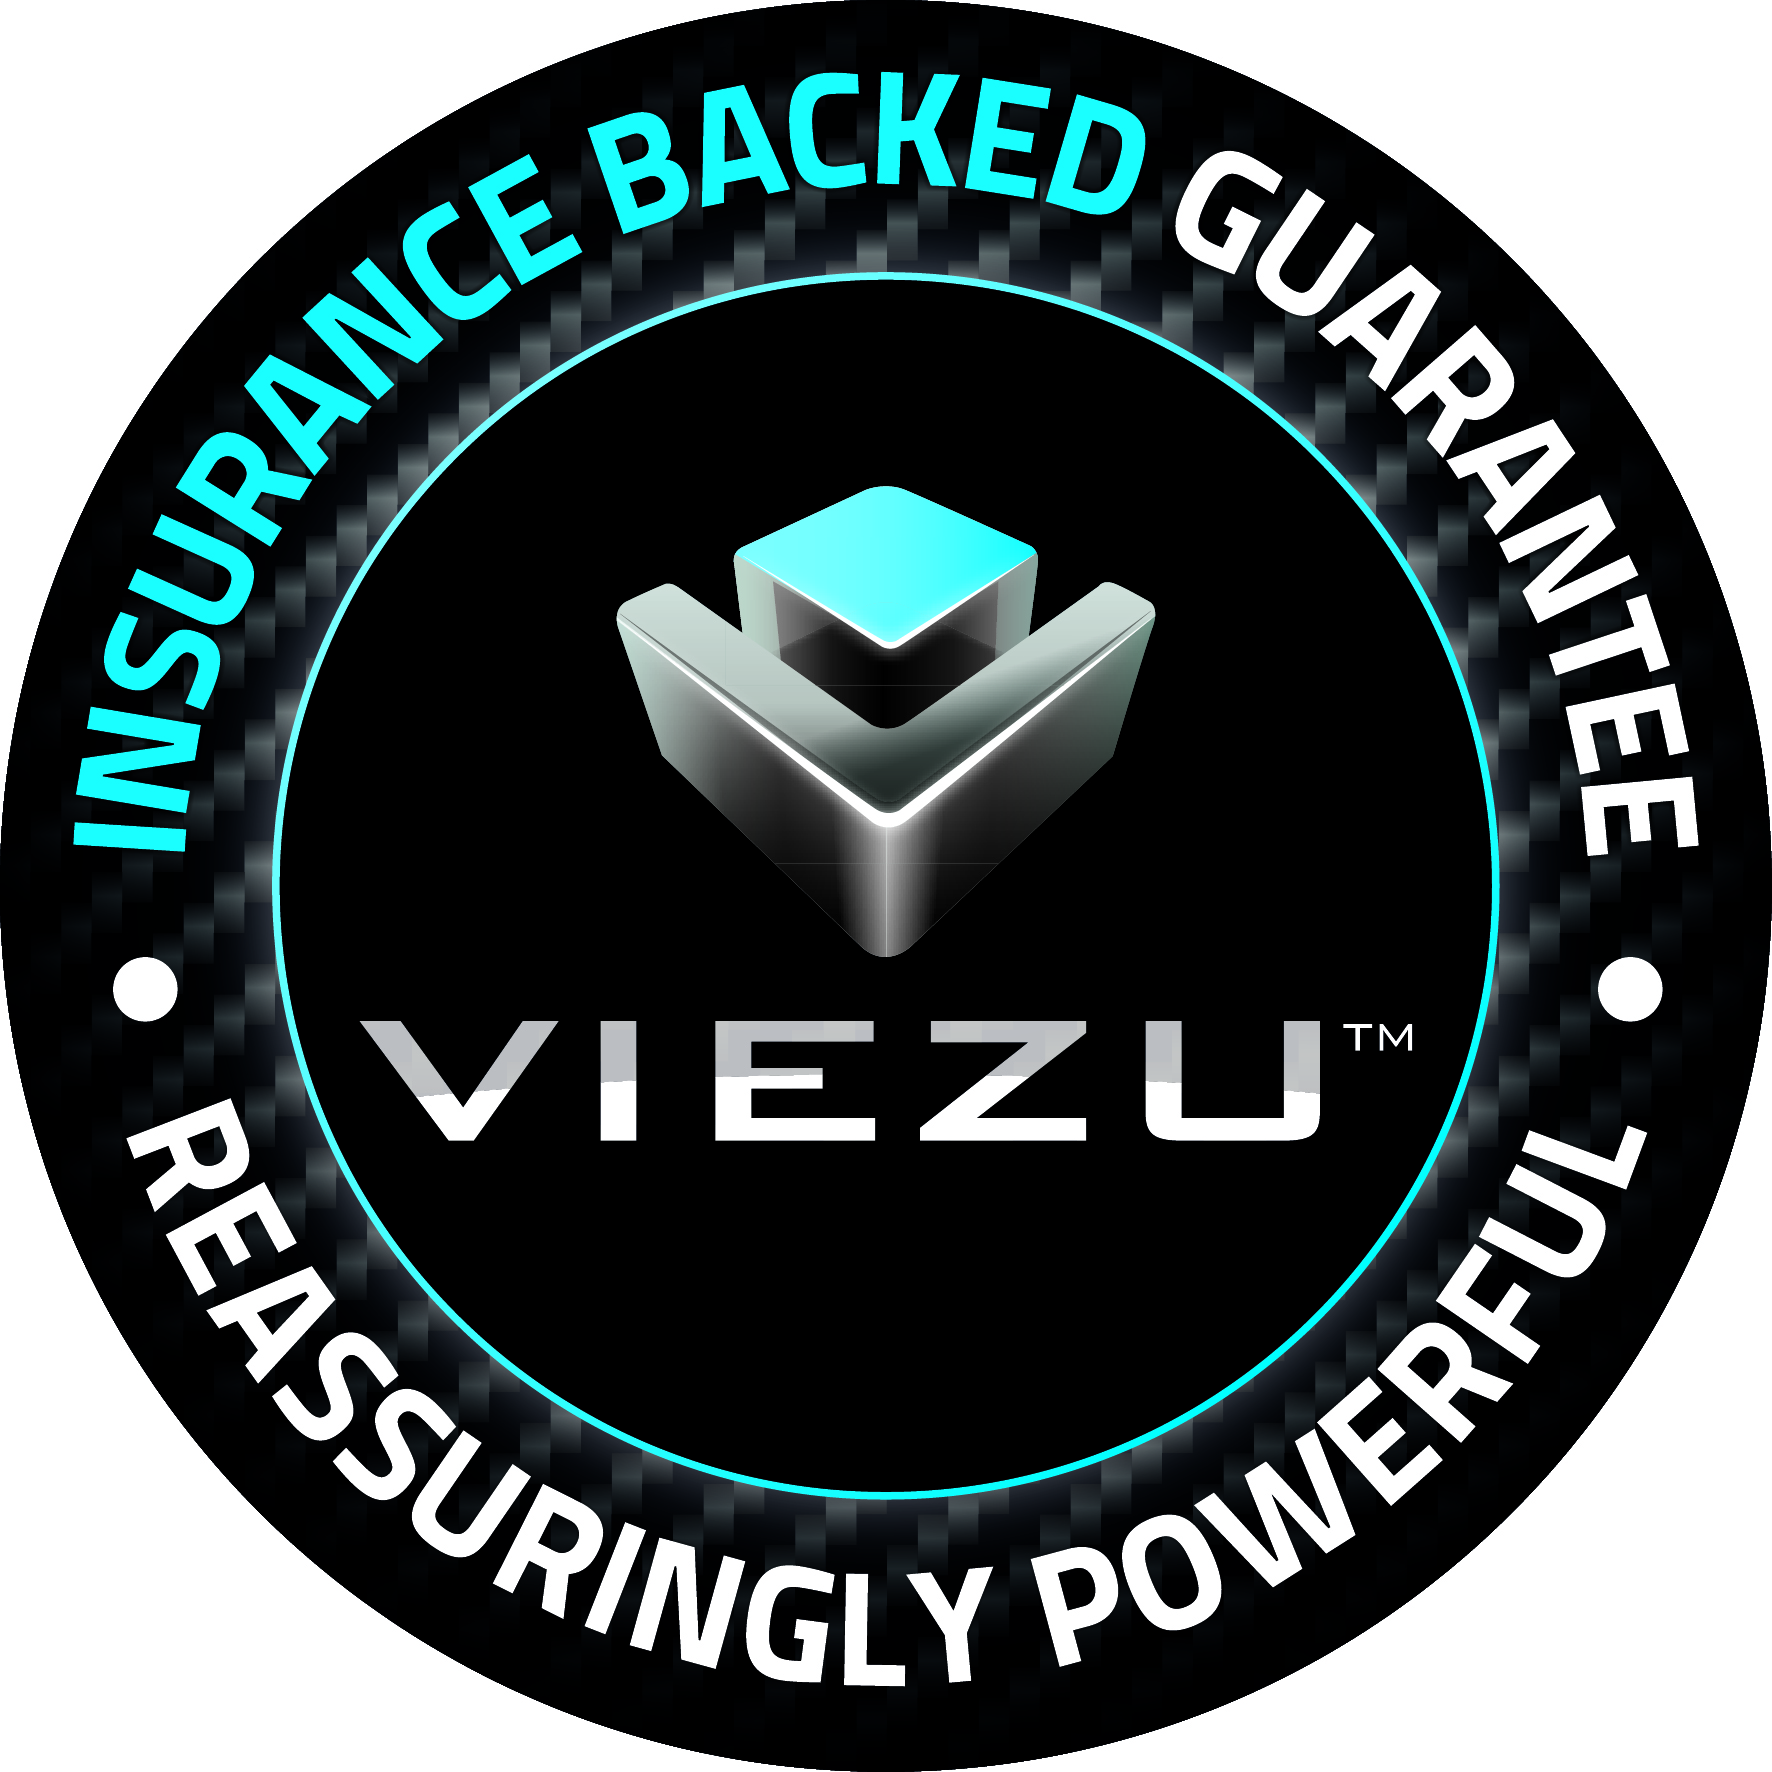 VIEZU INSURANCE BACKING